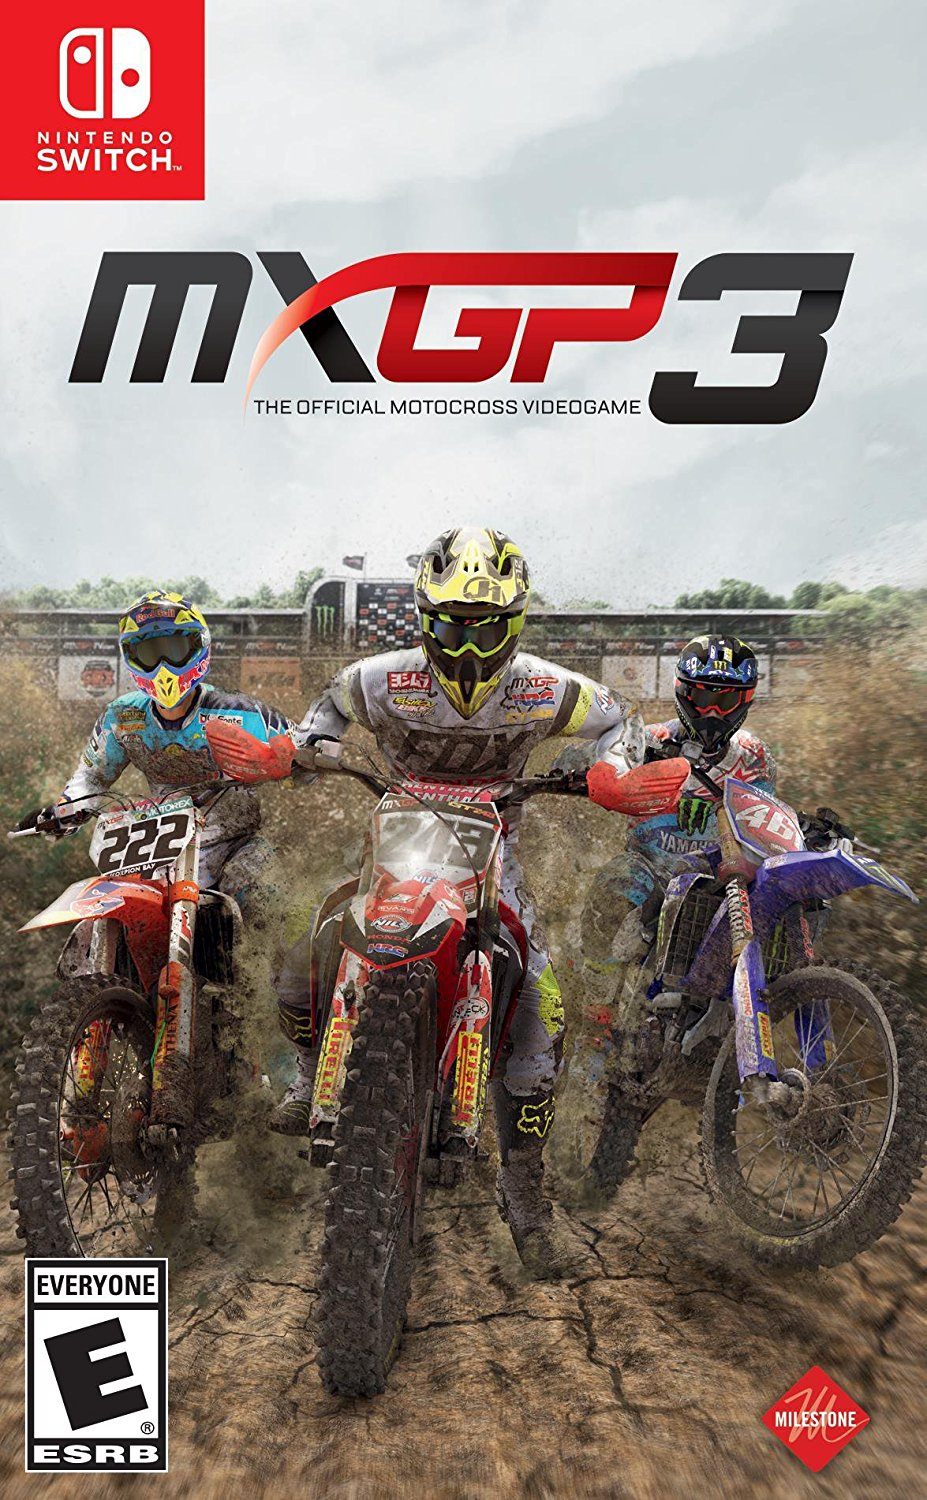 30 minutes of MXGP3 motocross racing footage on Switch